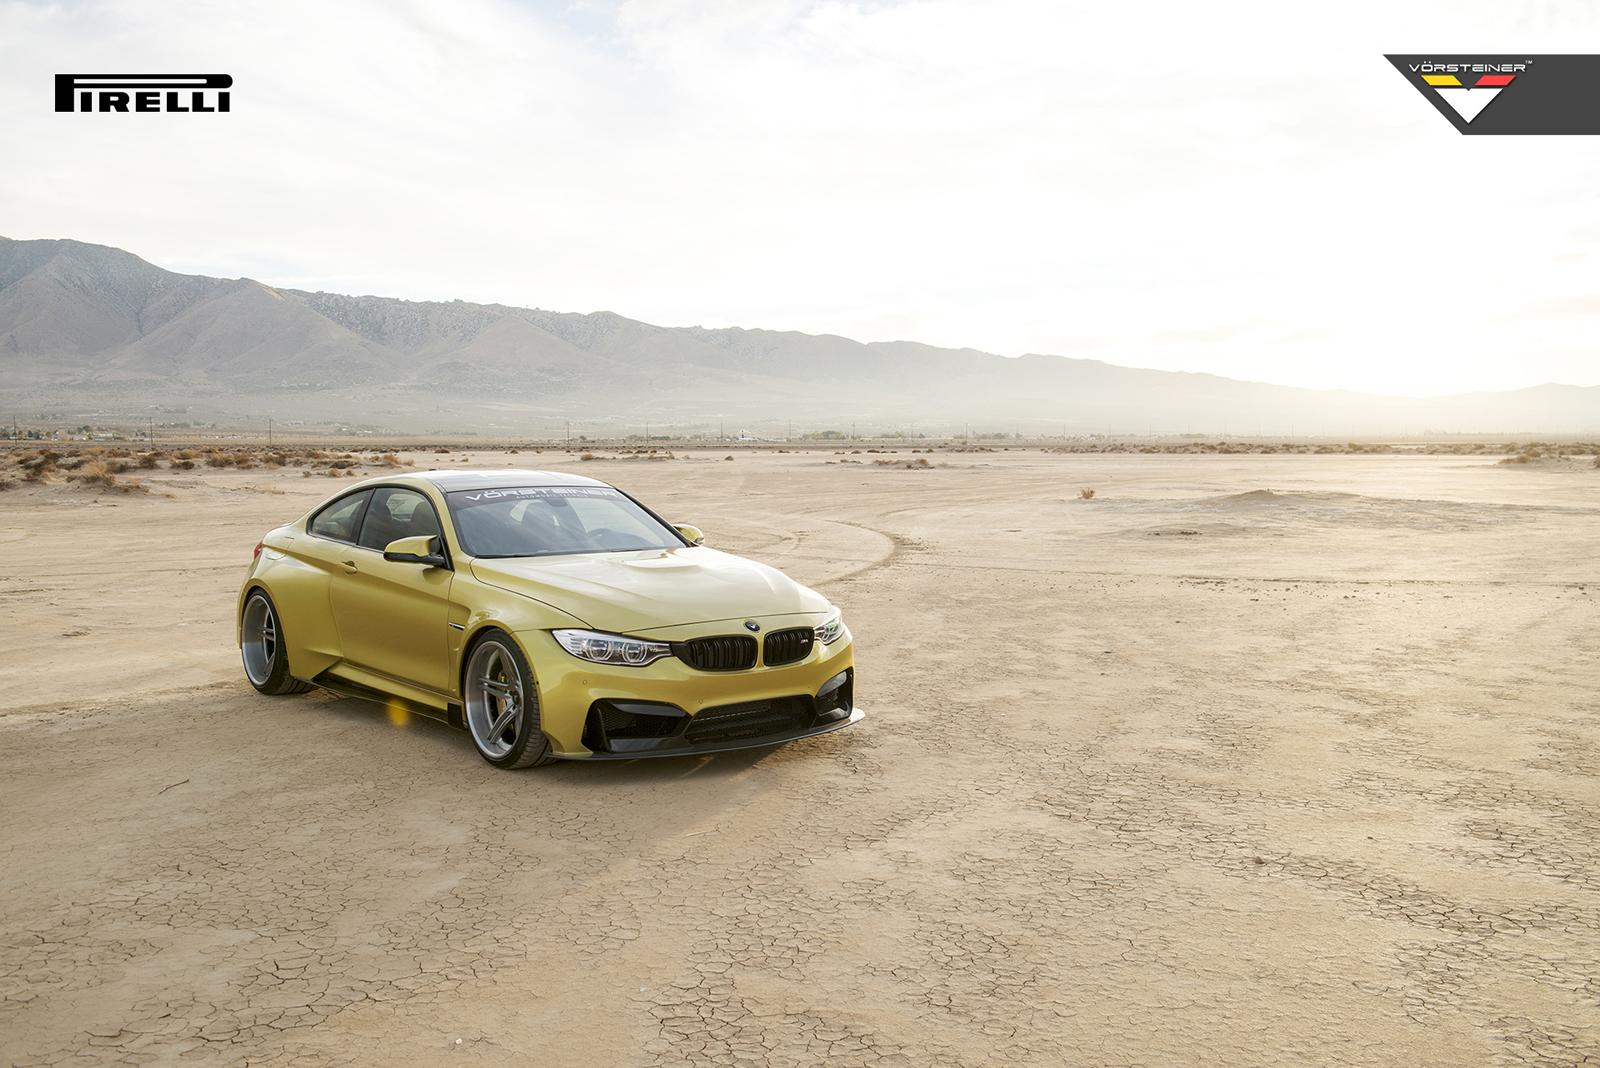 Vorsteiner Presents Their Adjusted BMW M4 GTRS